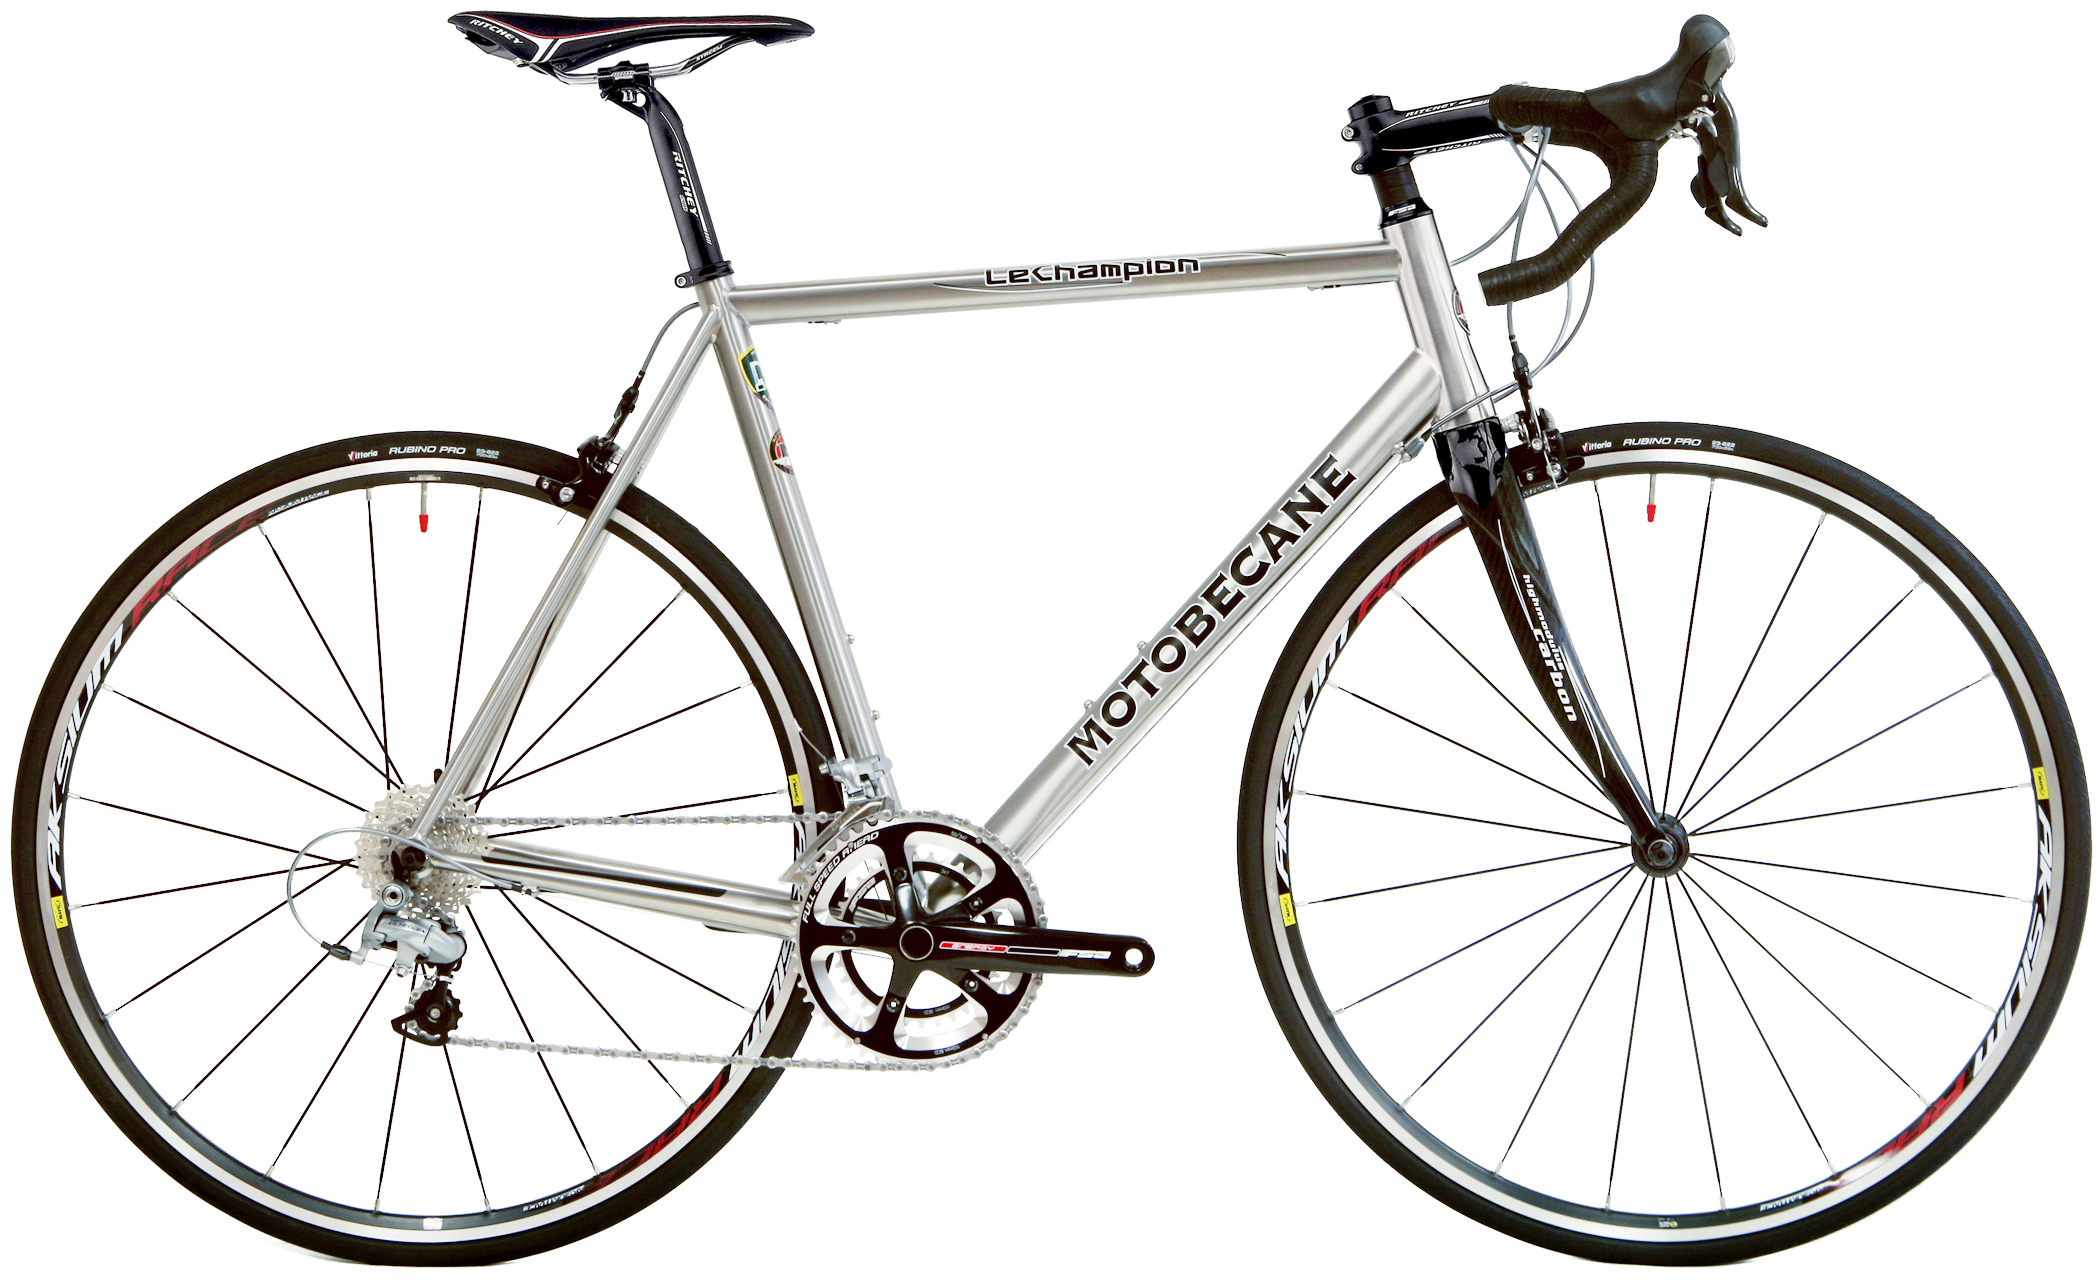 Save Up To 60% Off Titanium Road Bikes and Bicycles from bikesdirect.com